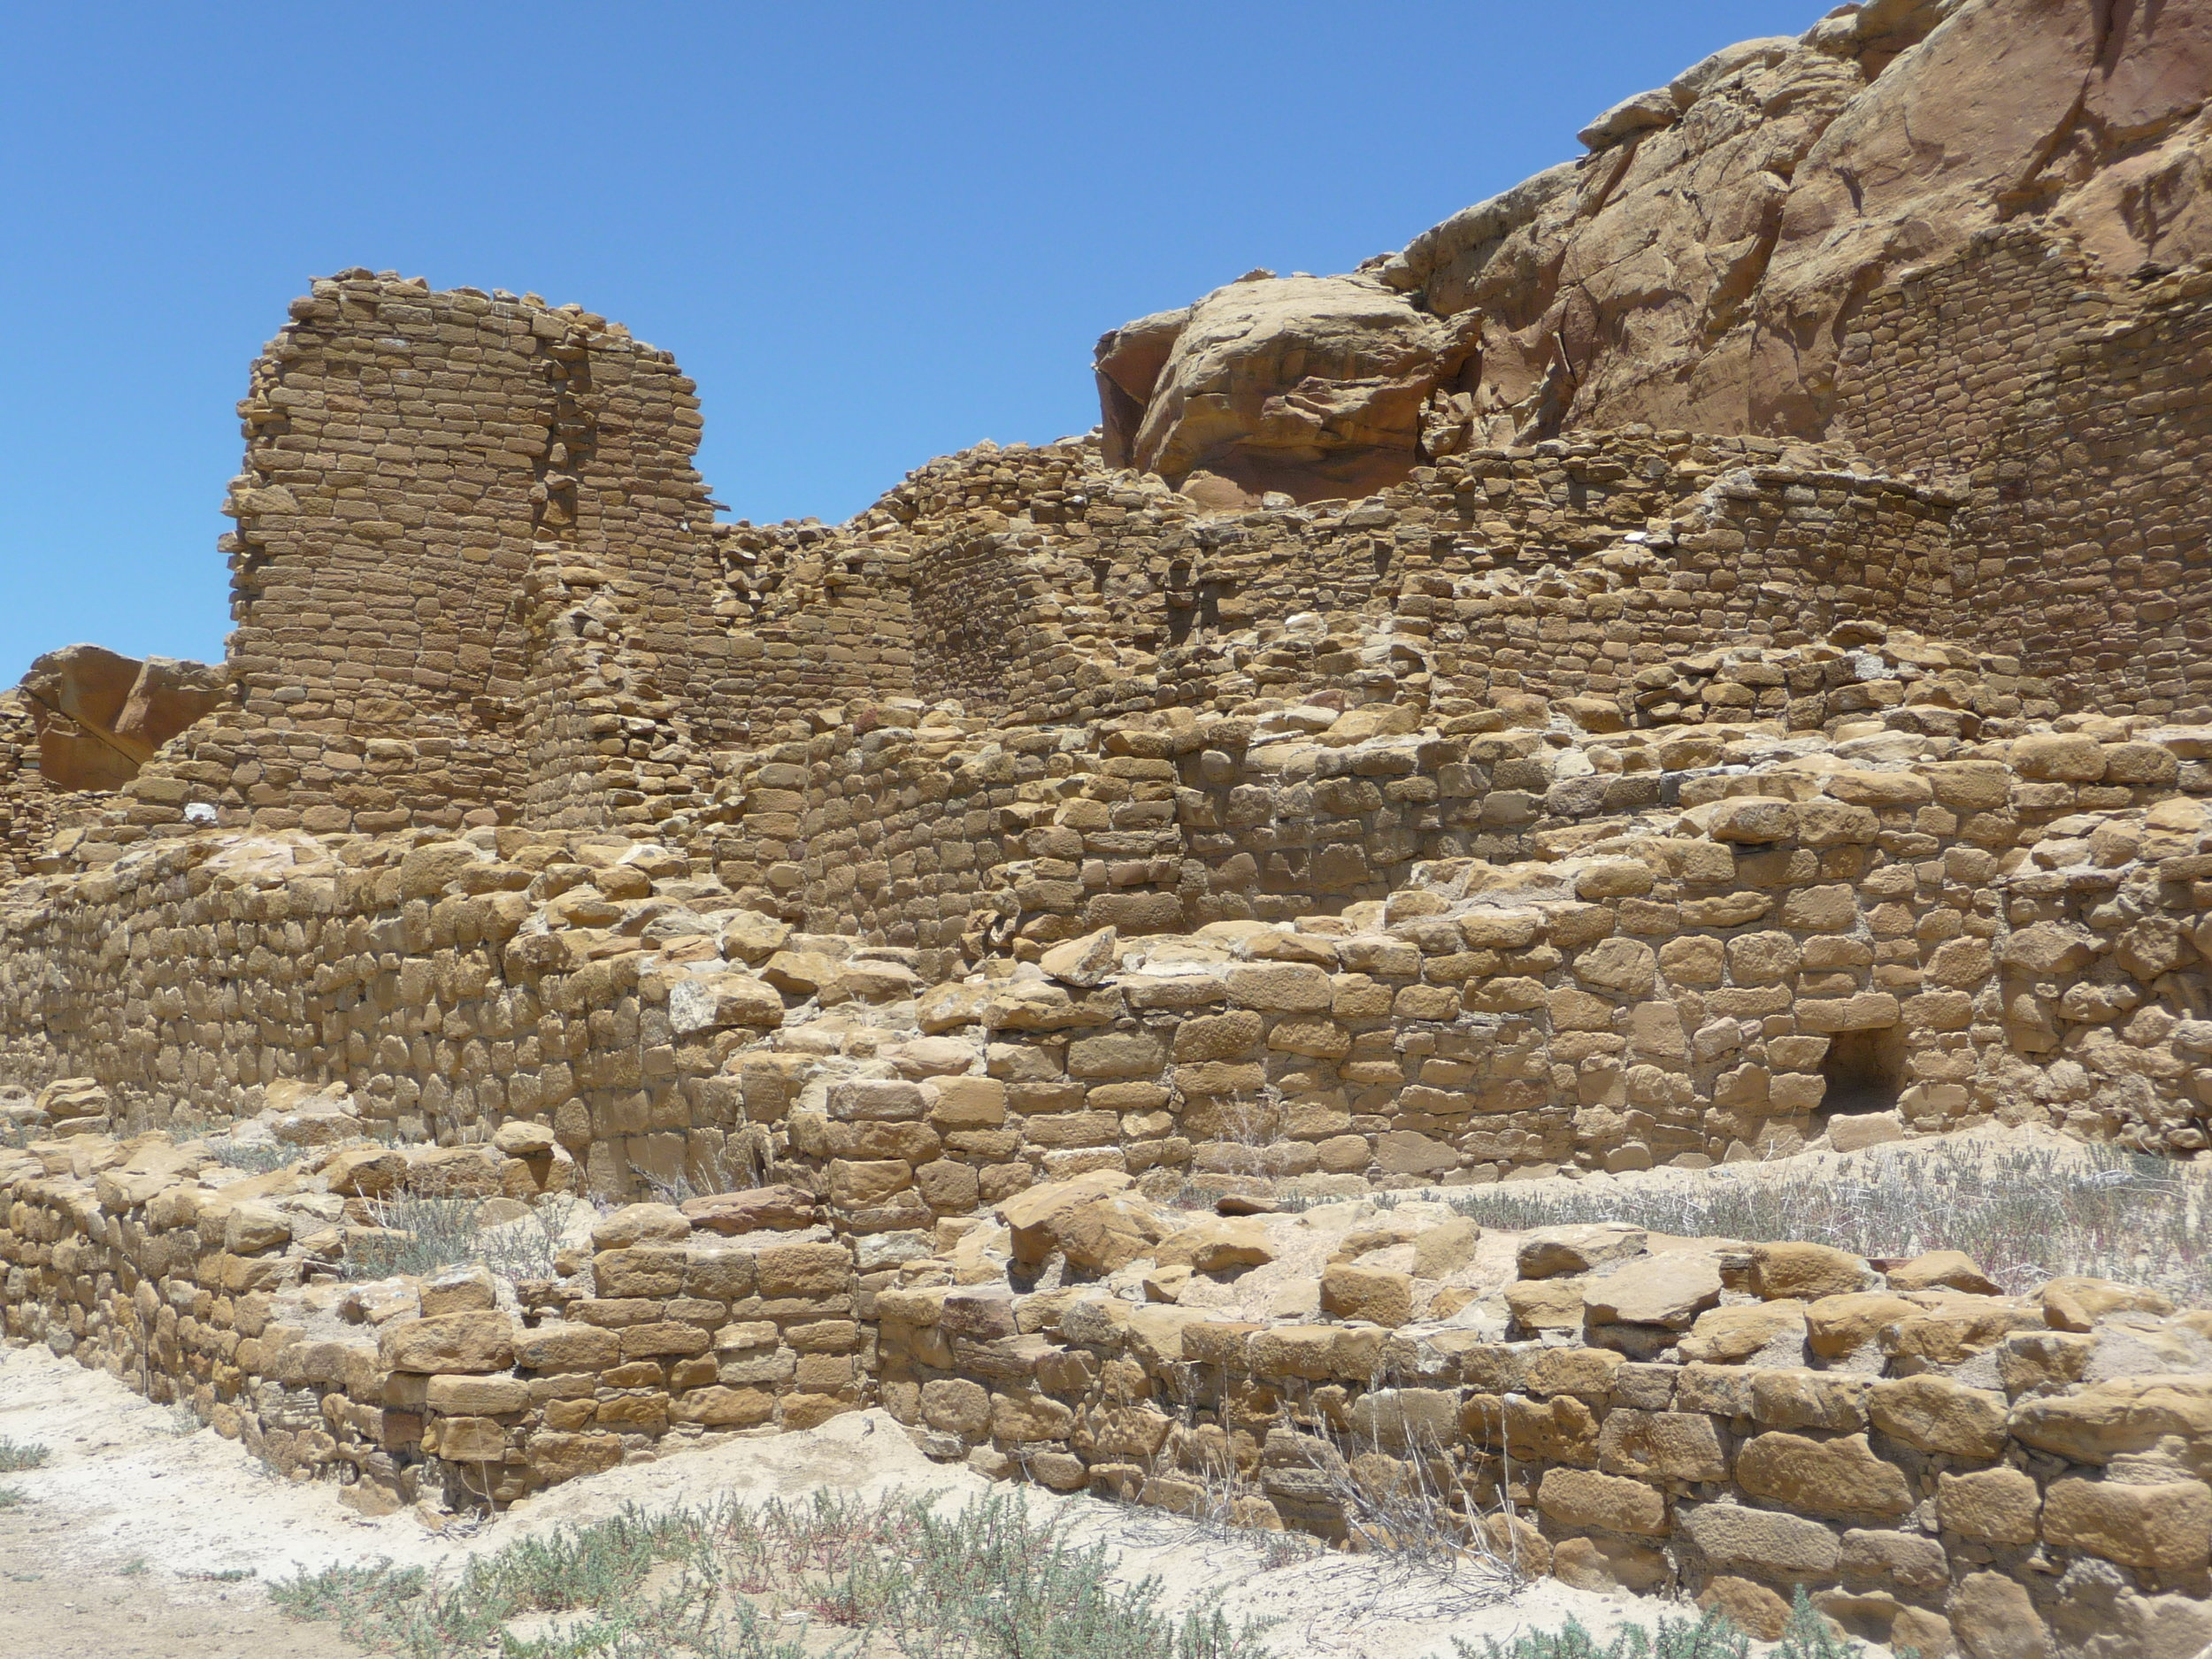 The remnants of Kin Kletso, Chaco Canyon. Photo credit: Alissa Simon